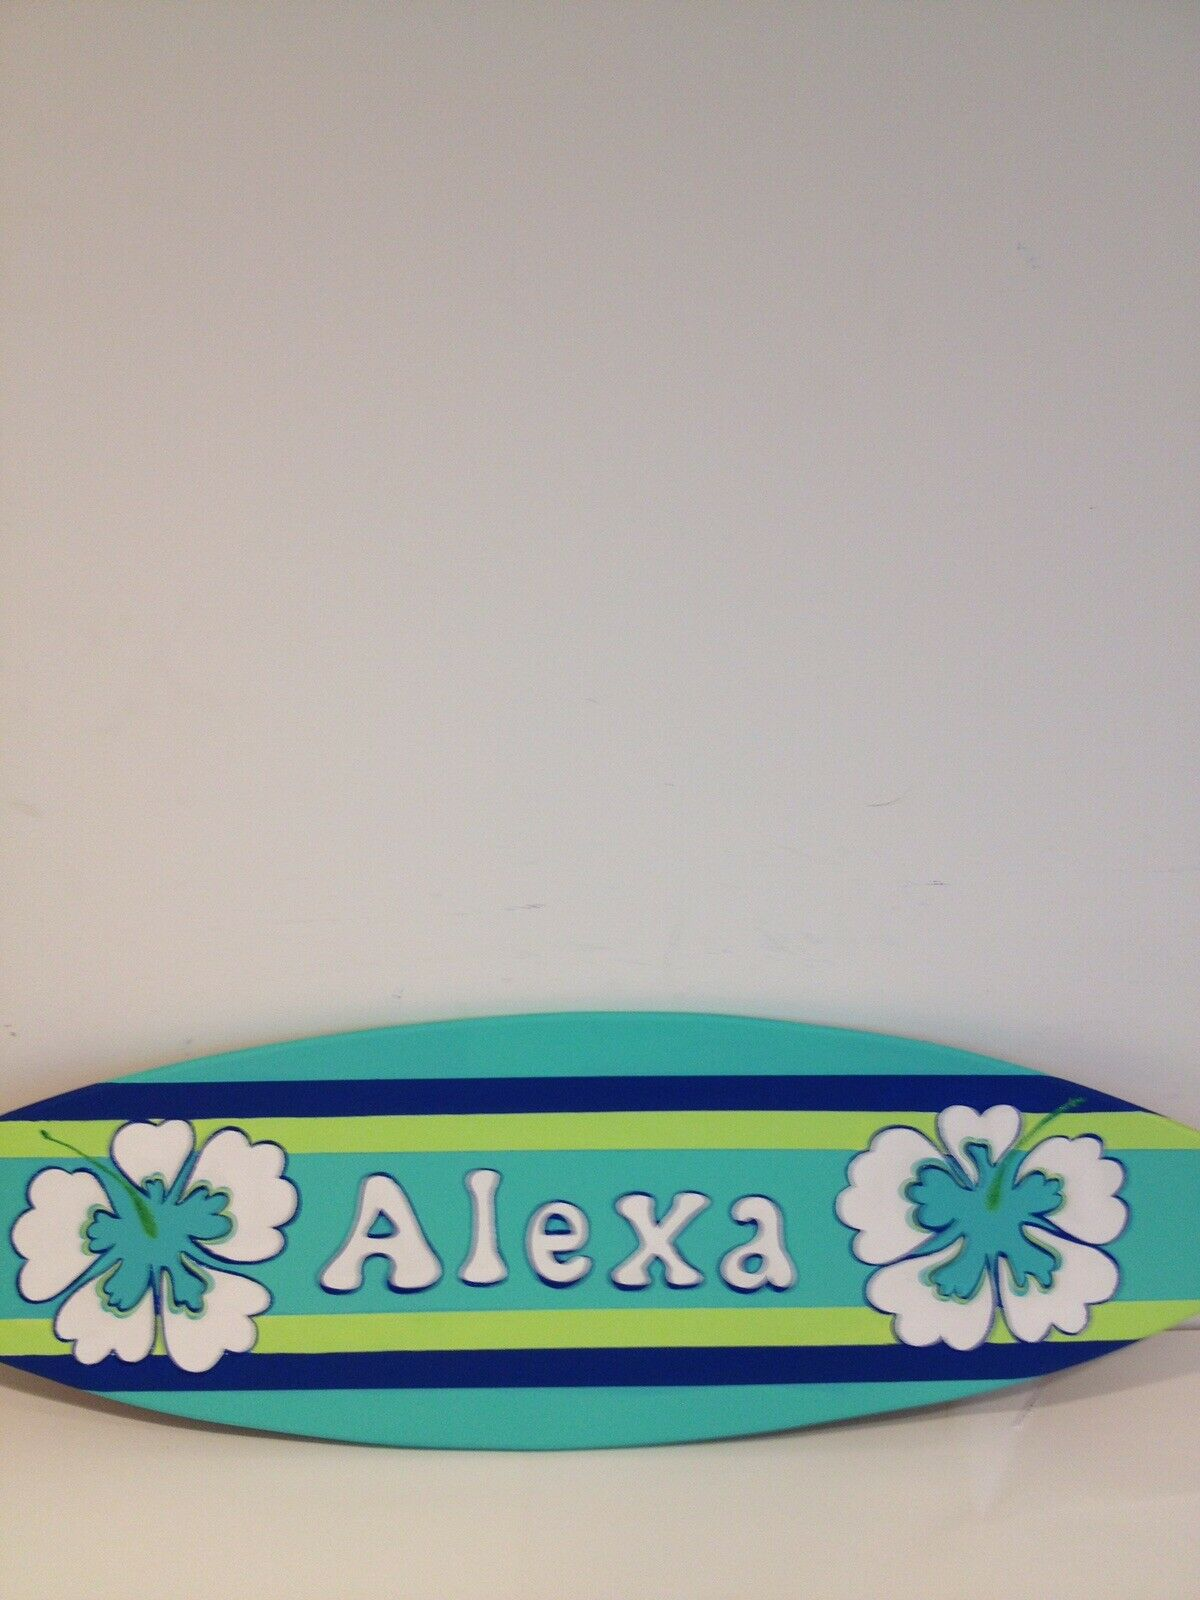 Surf Surfboard Beach Pool Party Guest Sign In Board Prop Decor Decoration sign